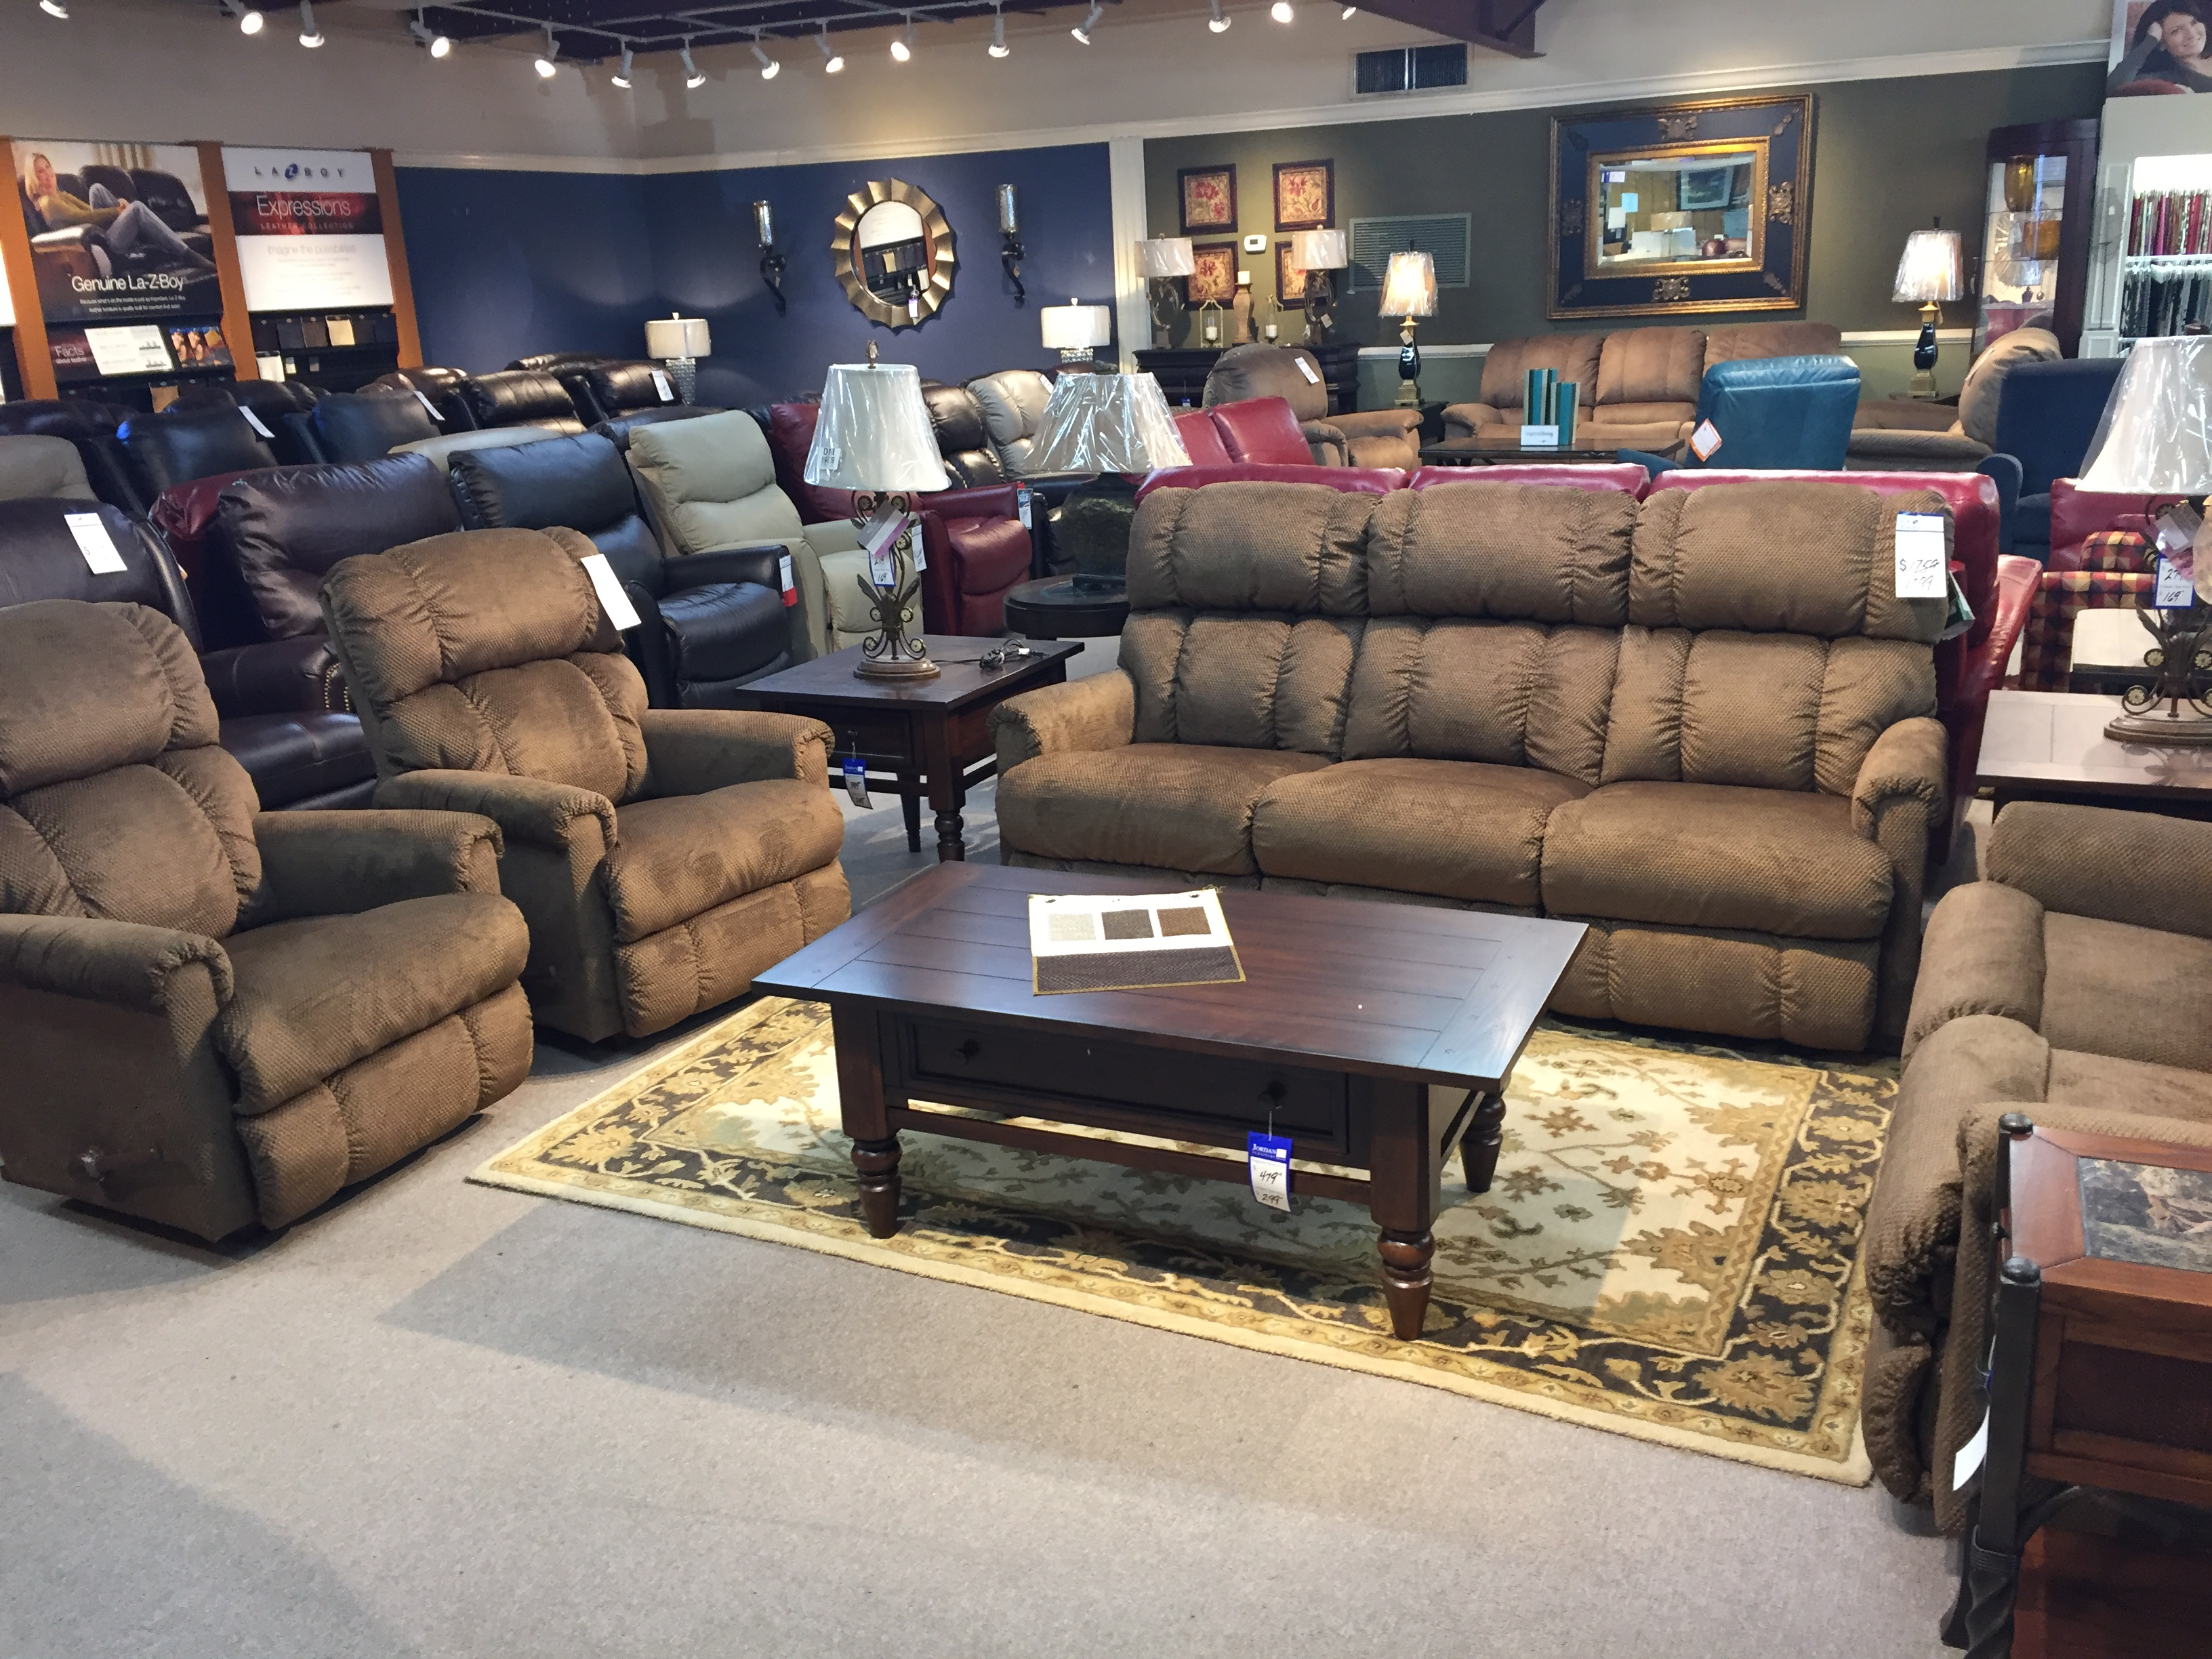 Jordan Furniture Florence Sc Best Image Middleburgarts Org